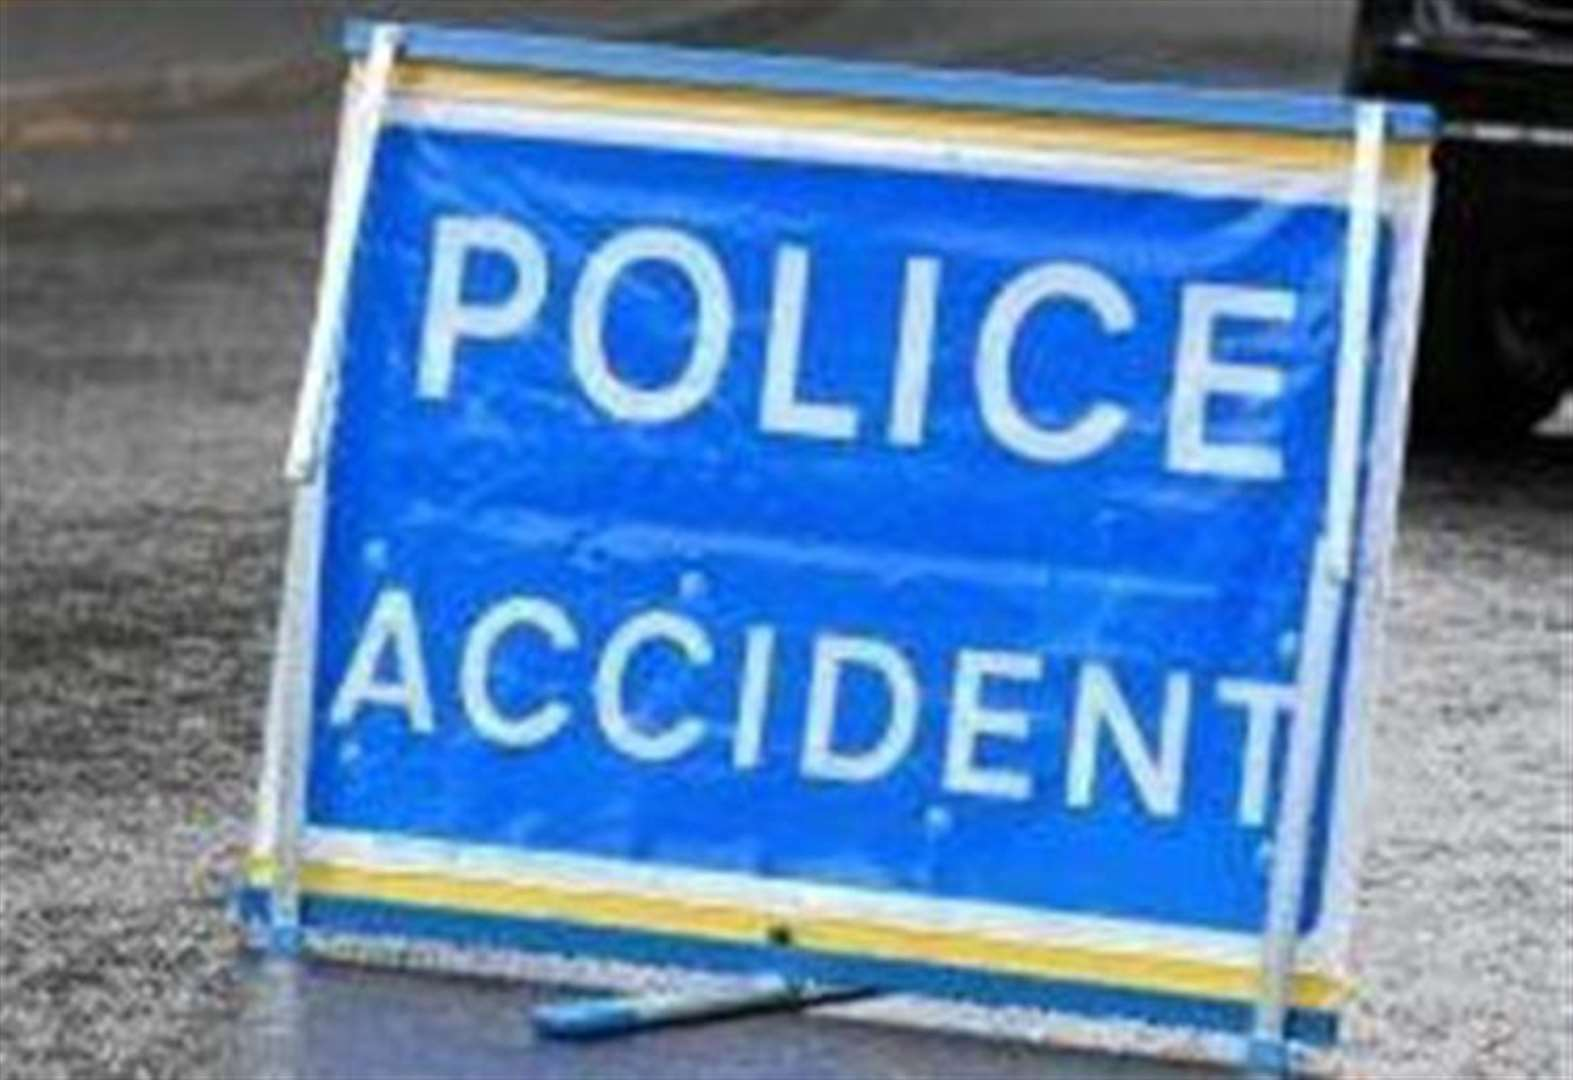 A52 at Donington closed after an accident further down the road